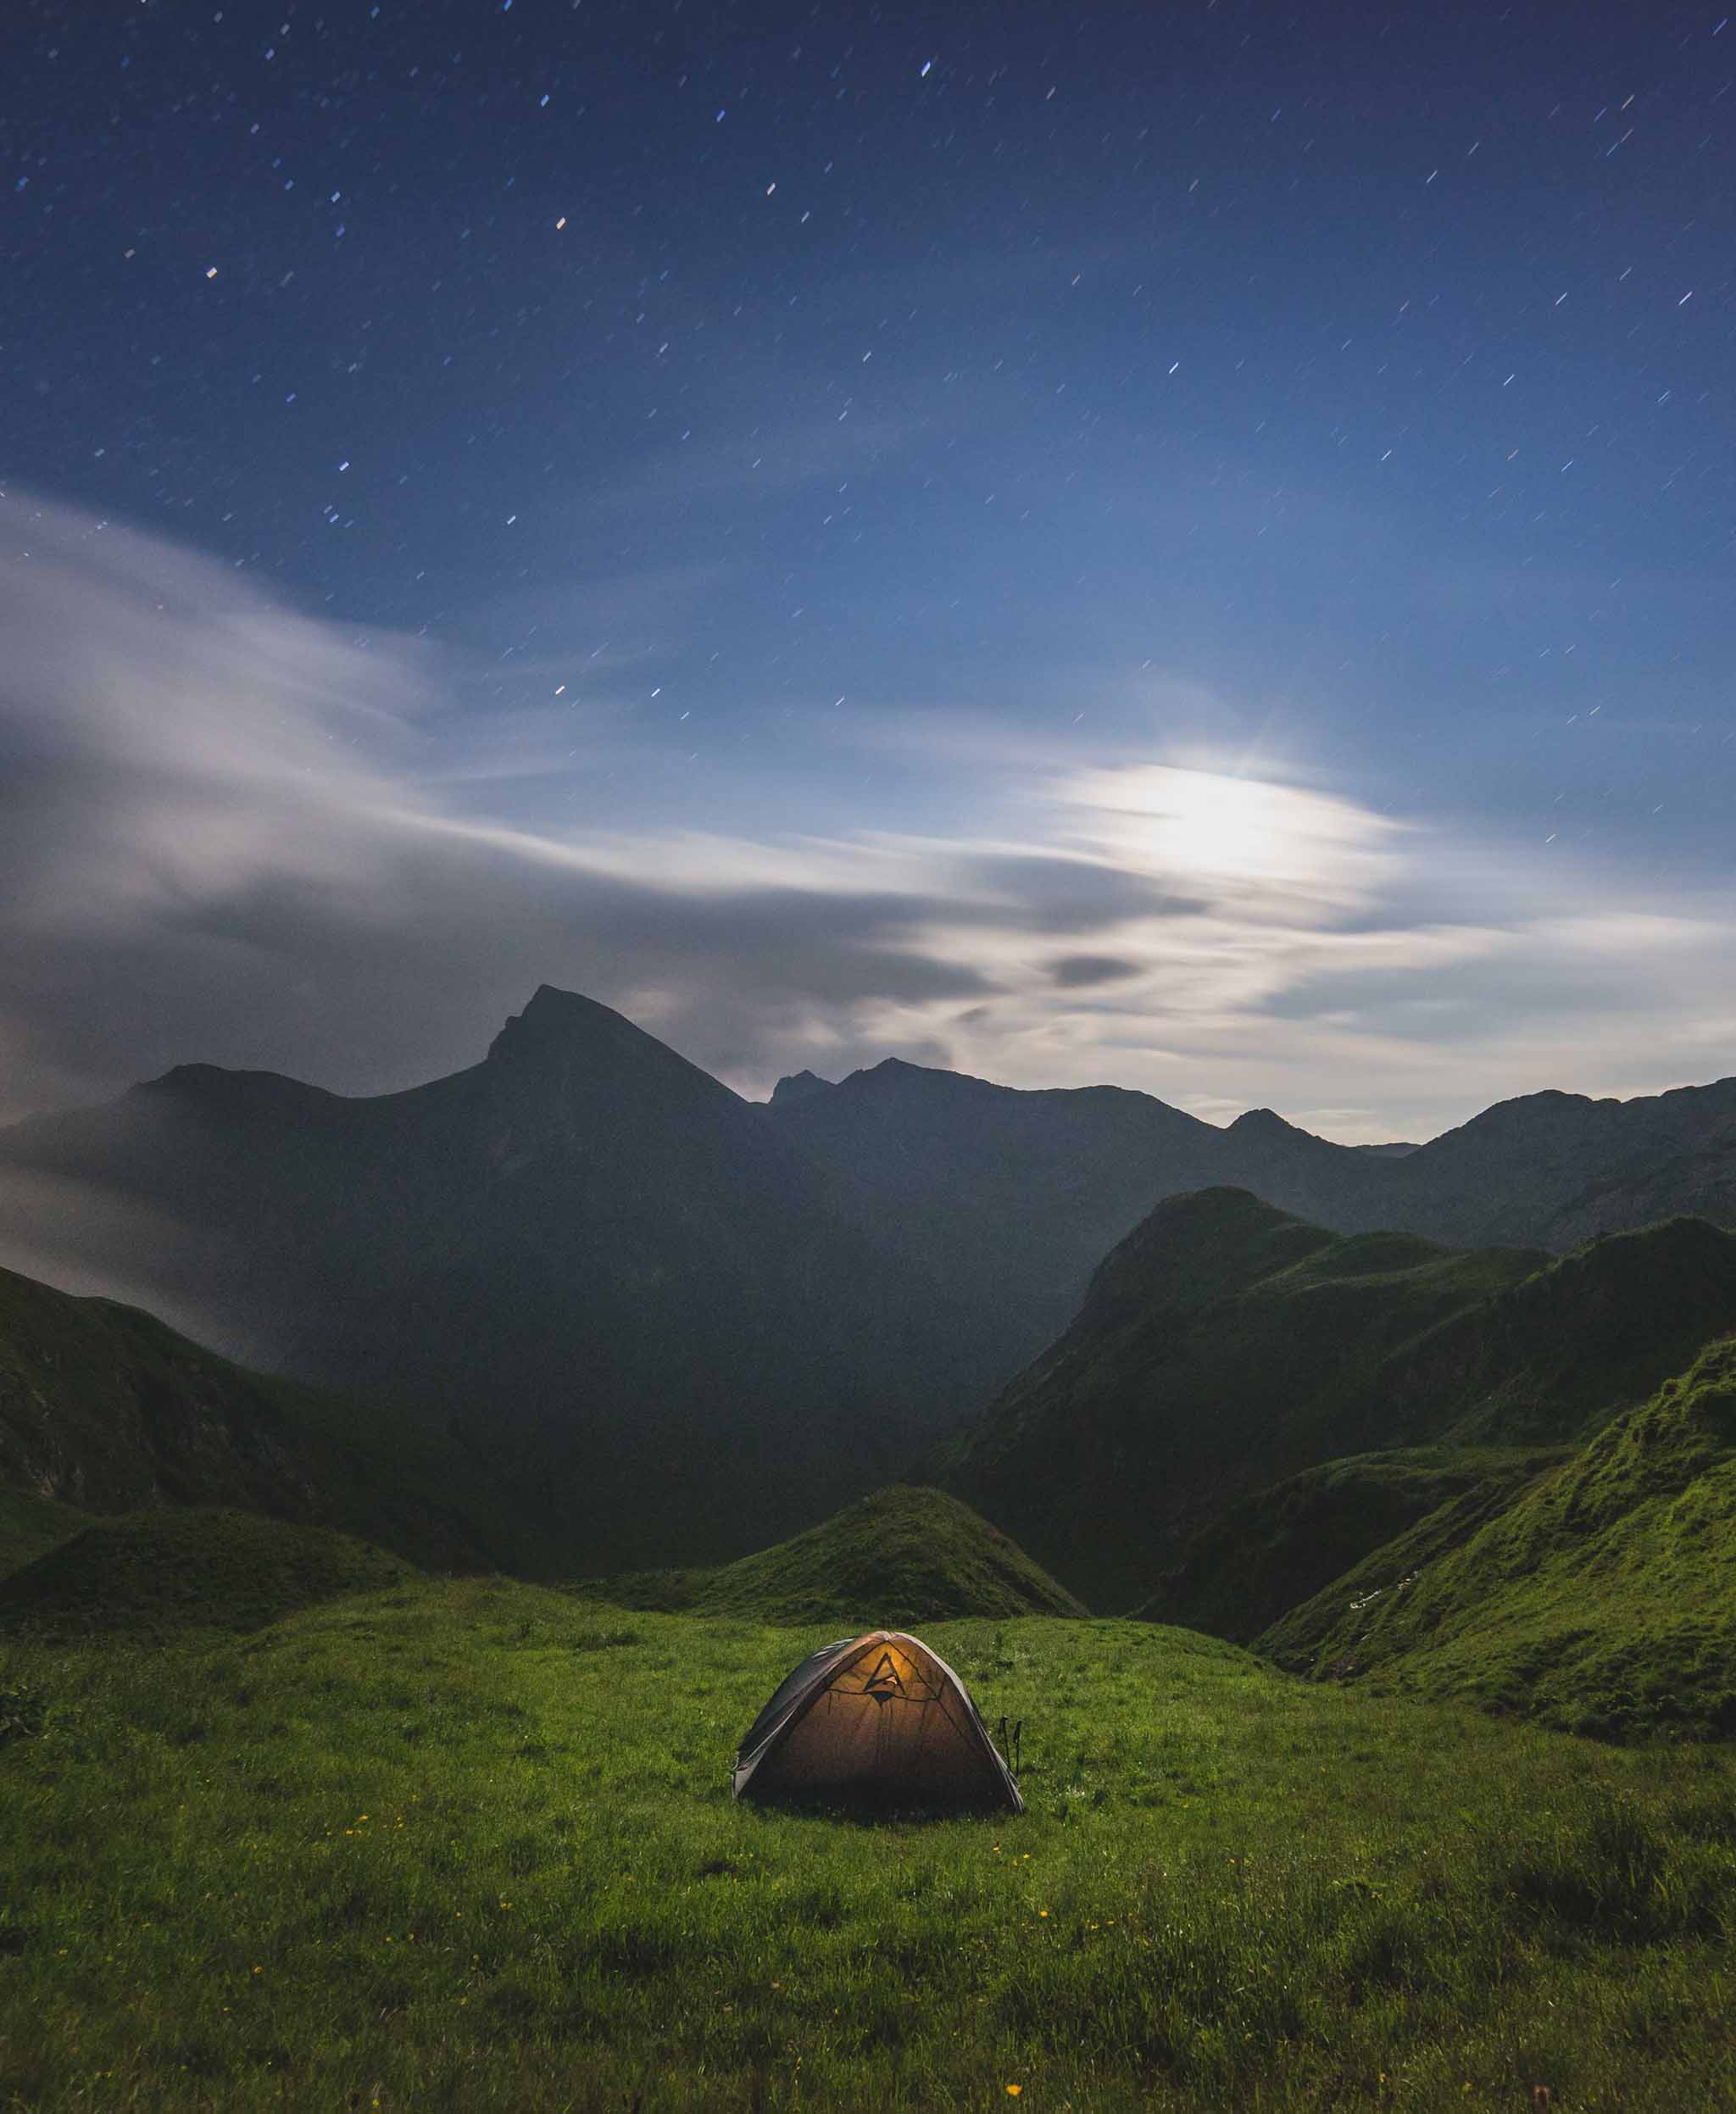 Alps night tent